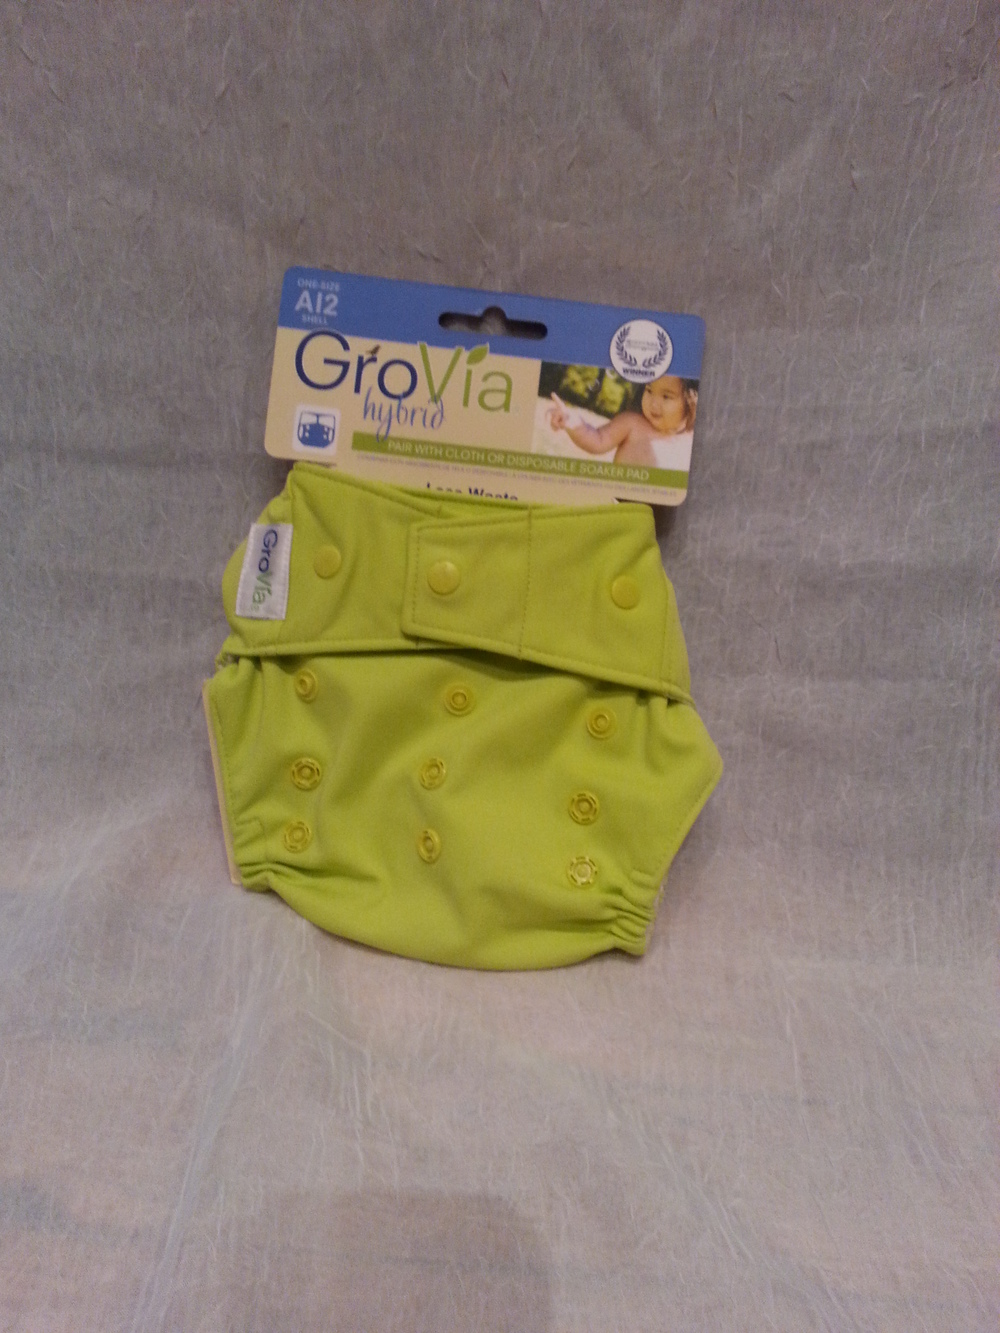 GroVia Cloth  Diaper Cover in Citrus $16.95 Wants 1 PURCHASED